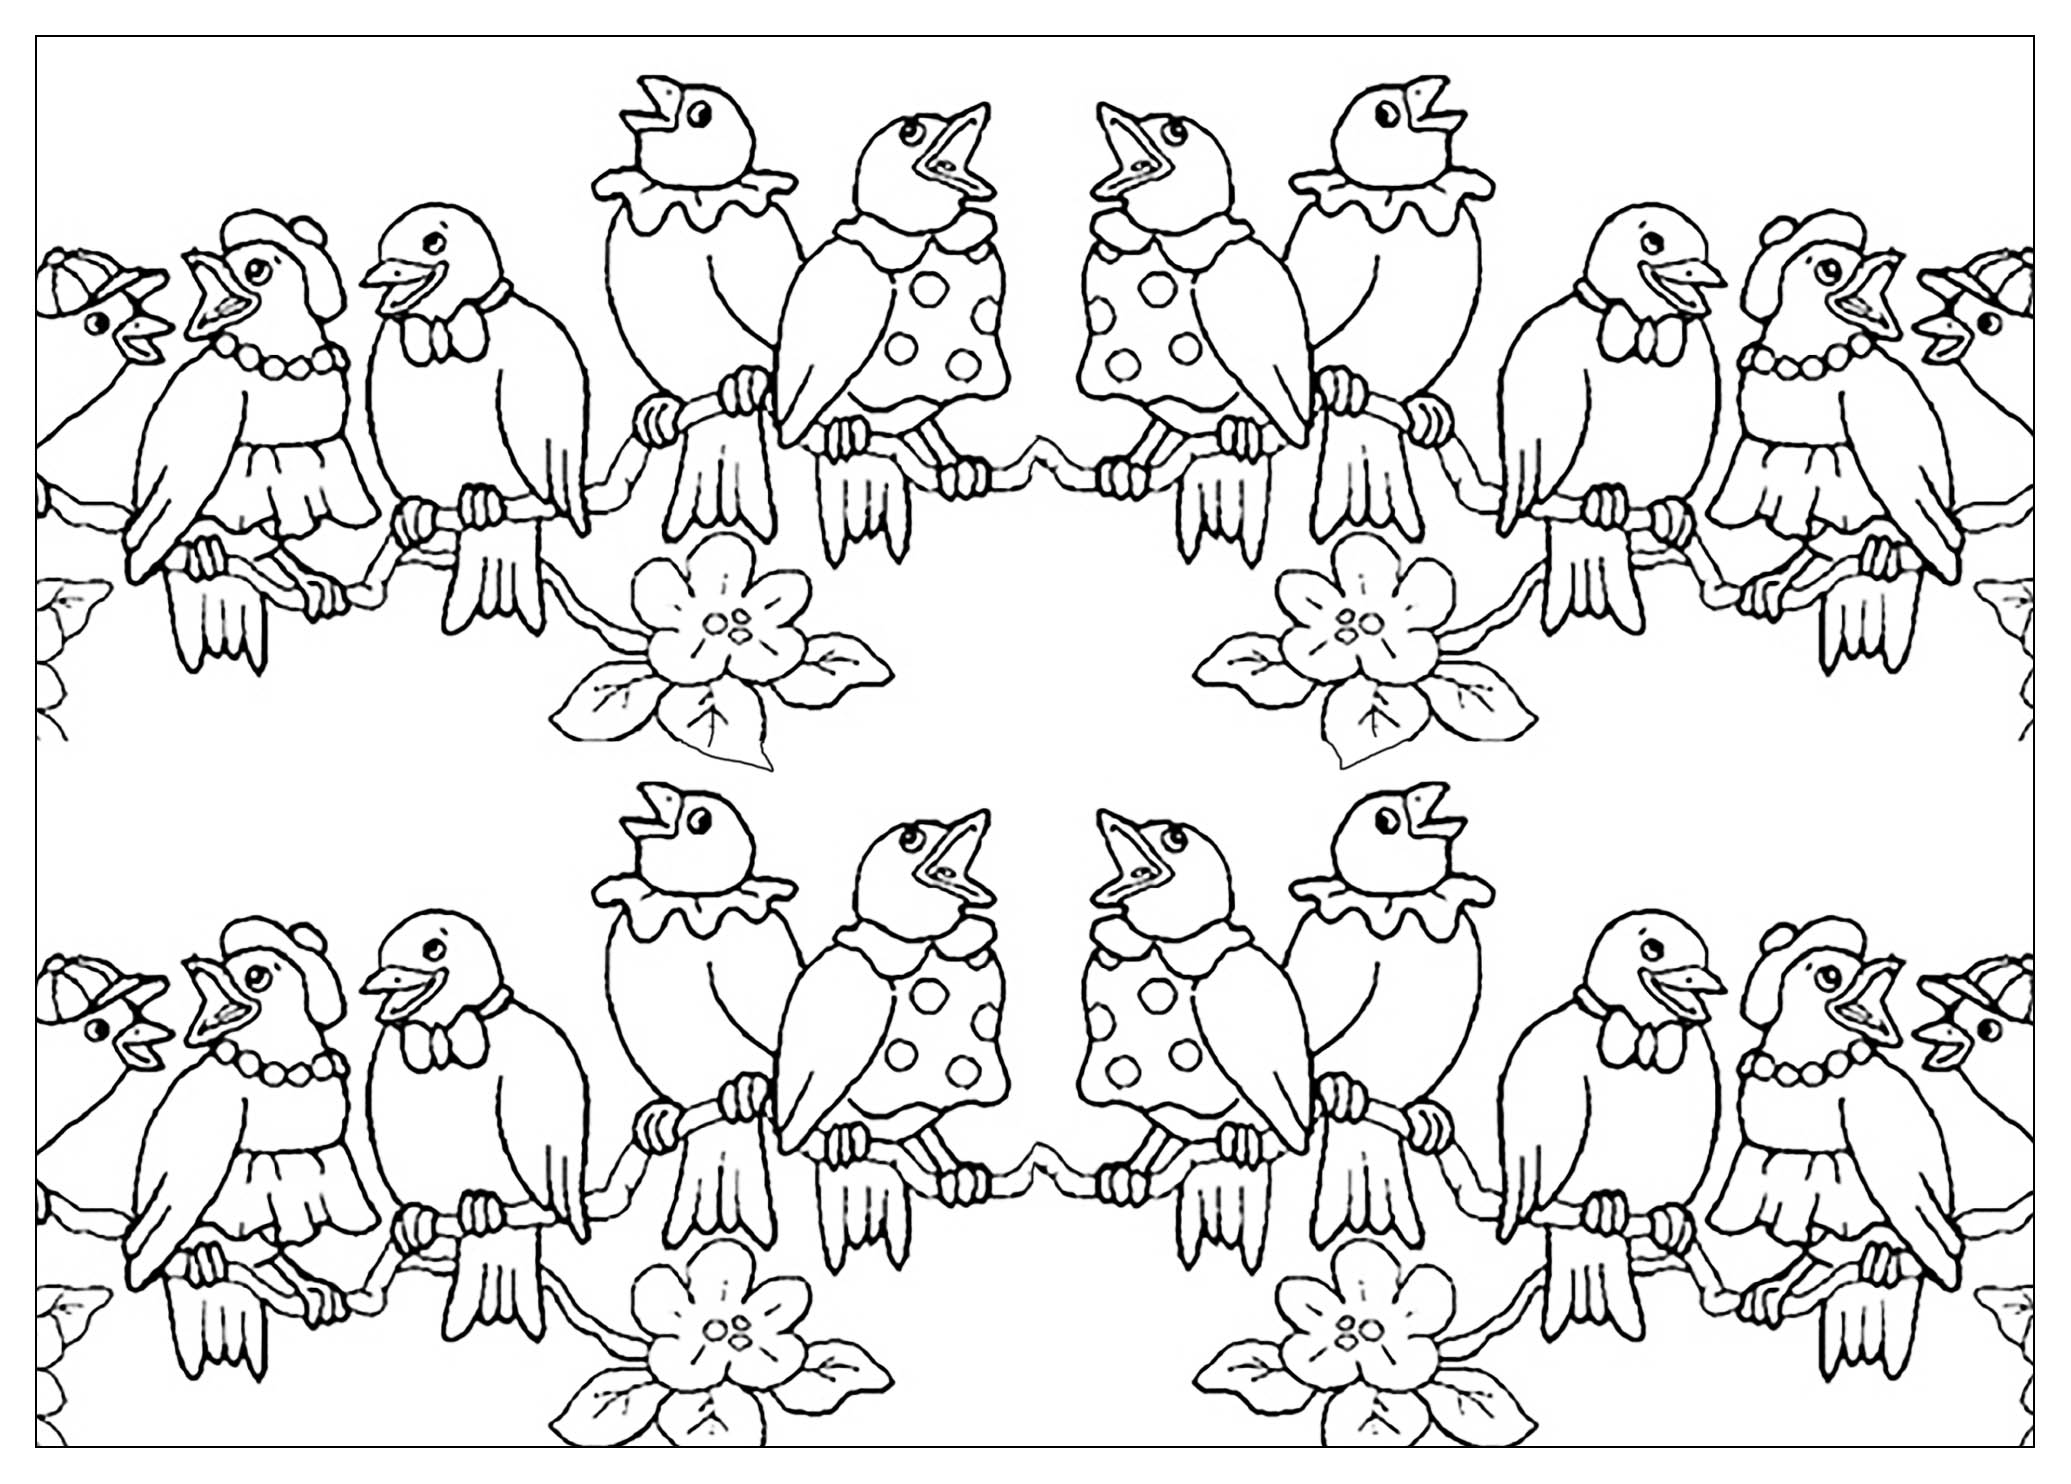 Bird Family Animal Coloring Pages For Kids To Print Amp Color